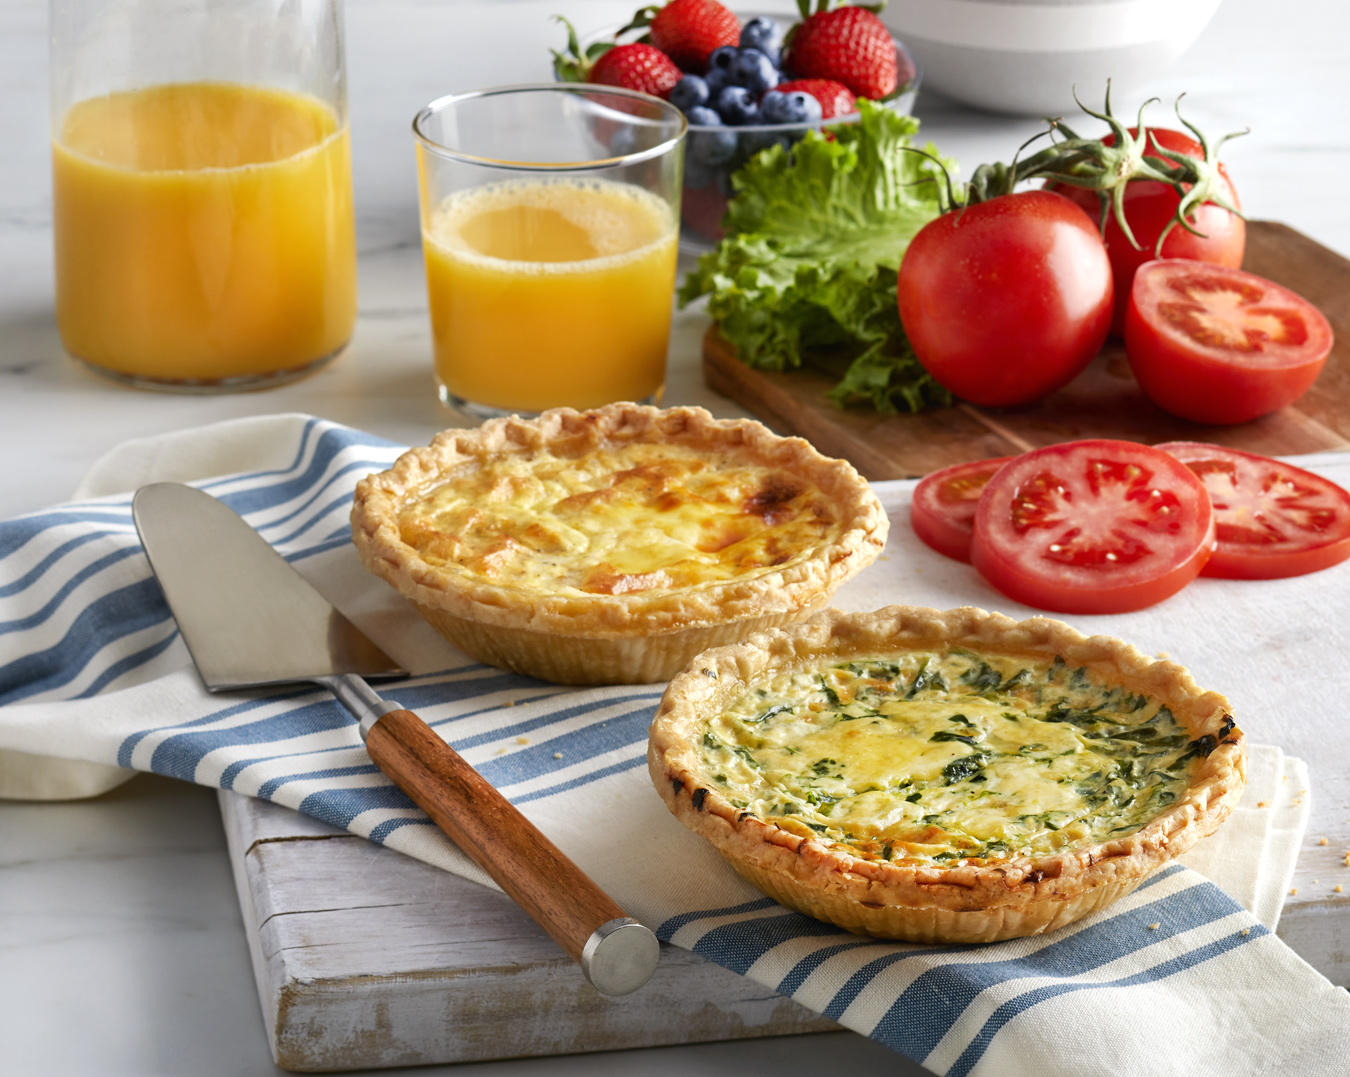 MimisShot-12-Quiche-Breakfast-apf